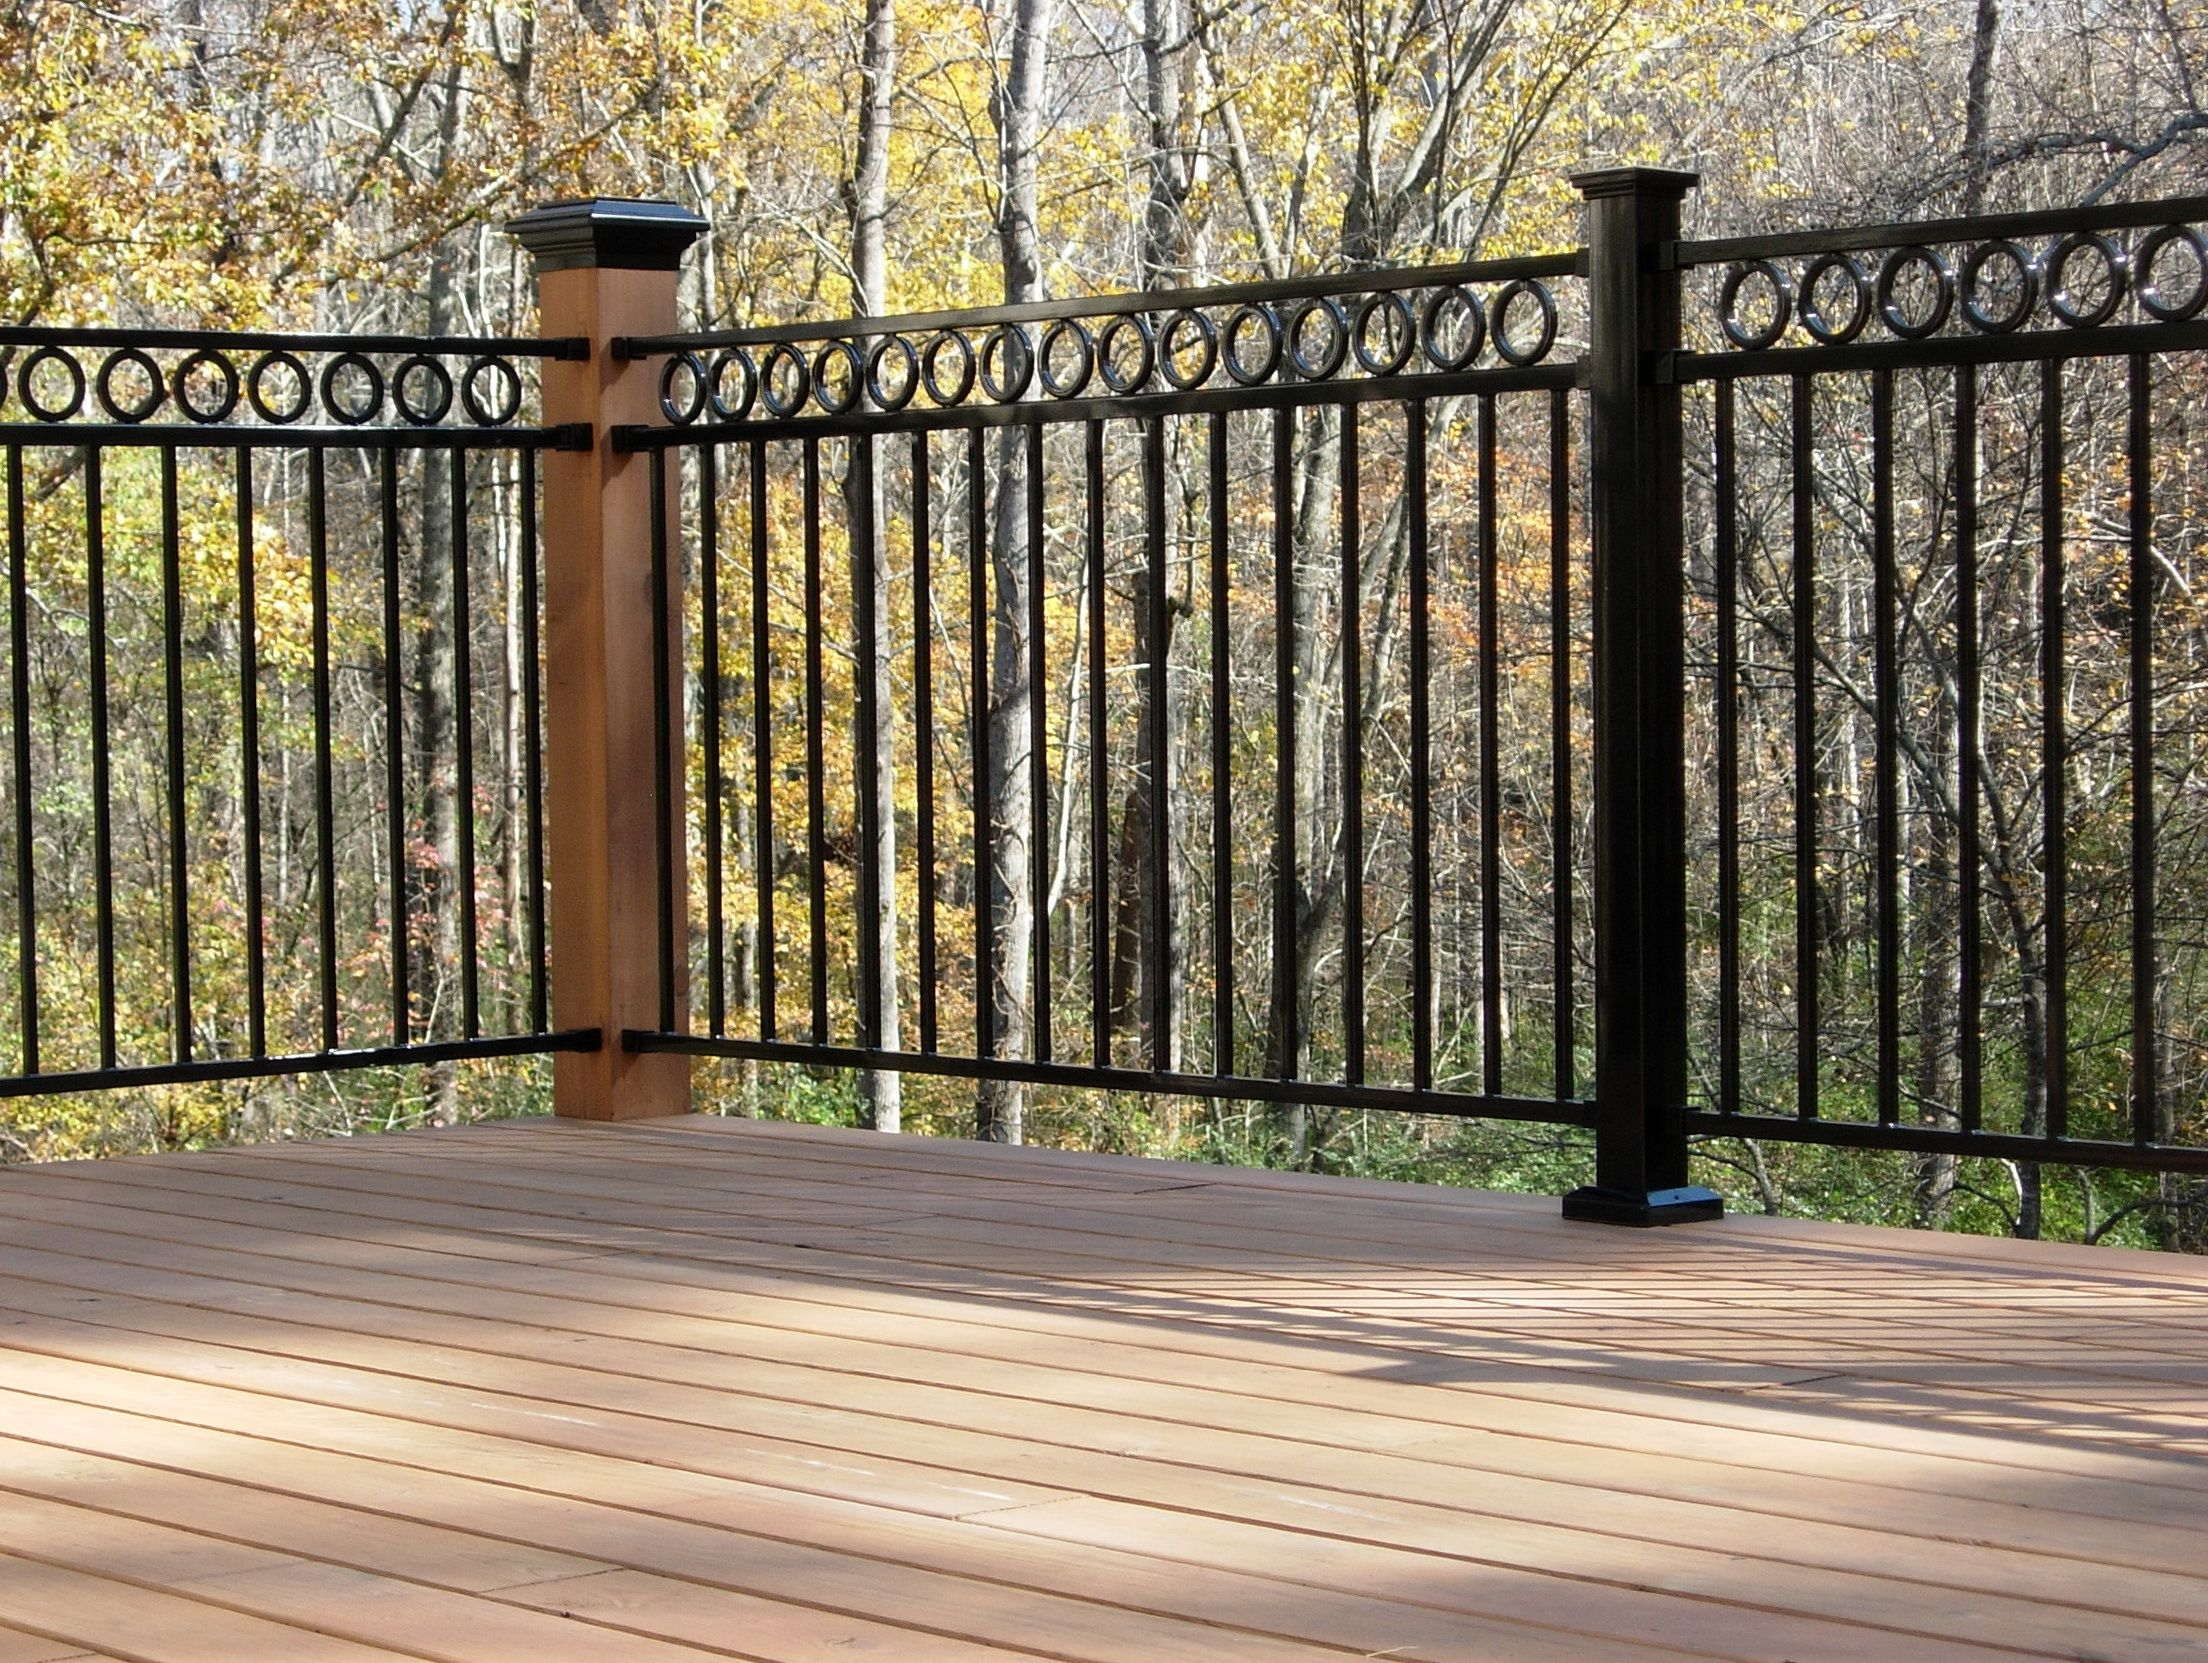 Outdoor Wrought Iron Railings Deck Home Design Ideas